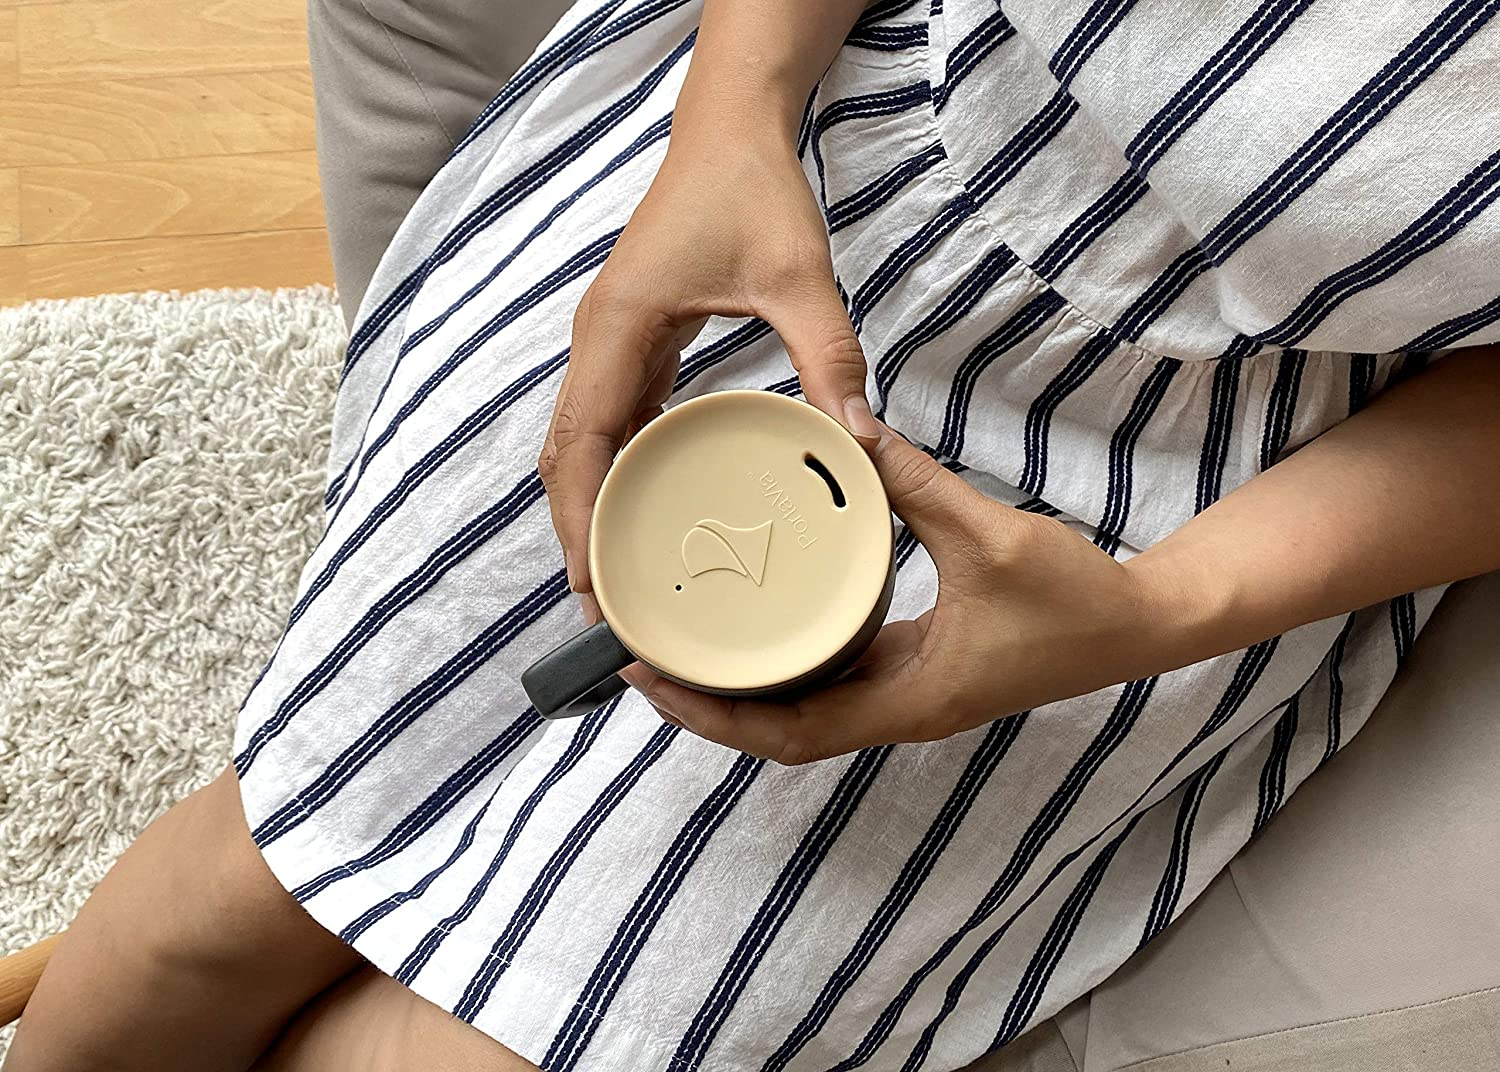 The Universal to-Go Coffee Cup Lid Cappuccino PortaVia